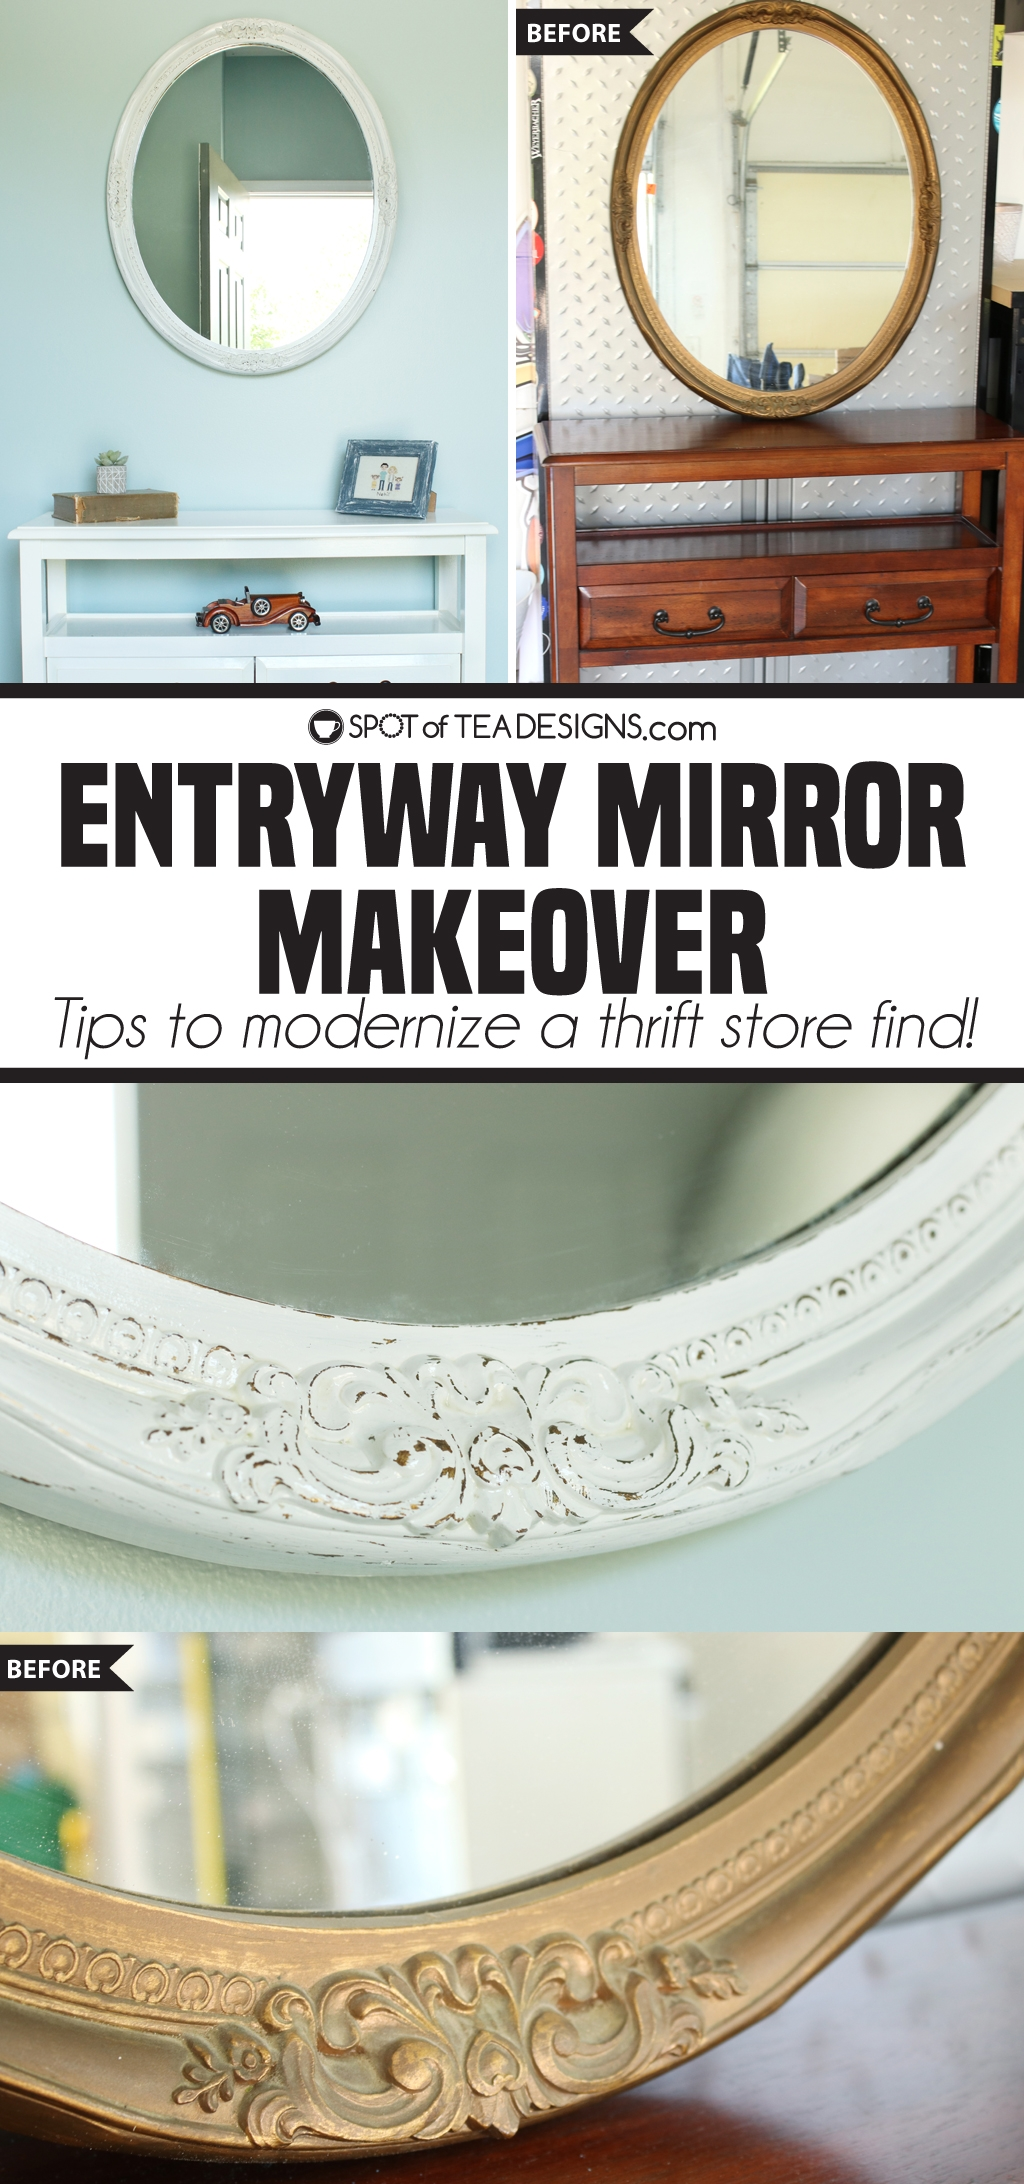 Entryway mirror makeover | spotofteadesigns.com